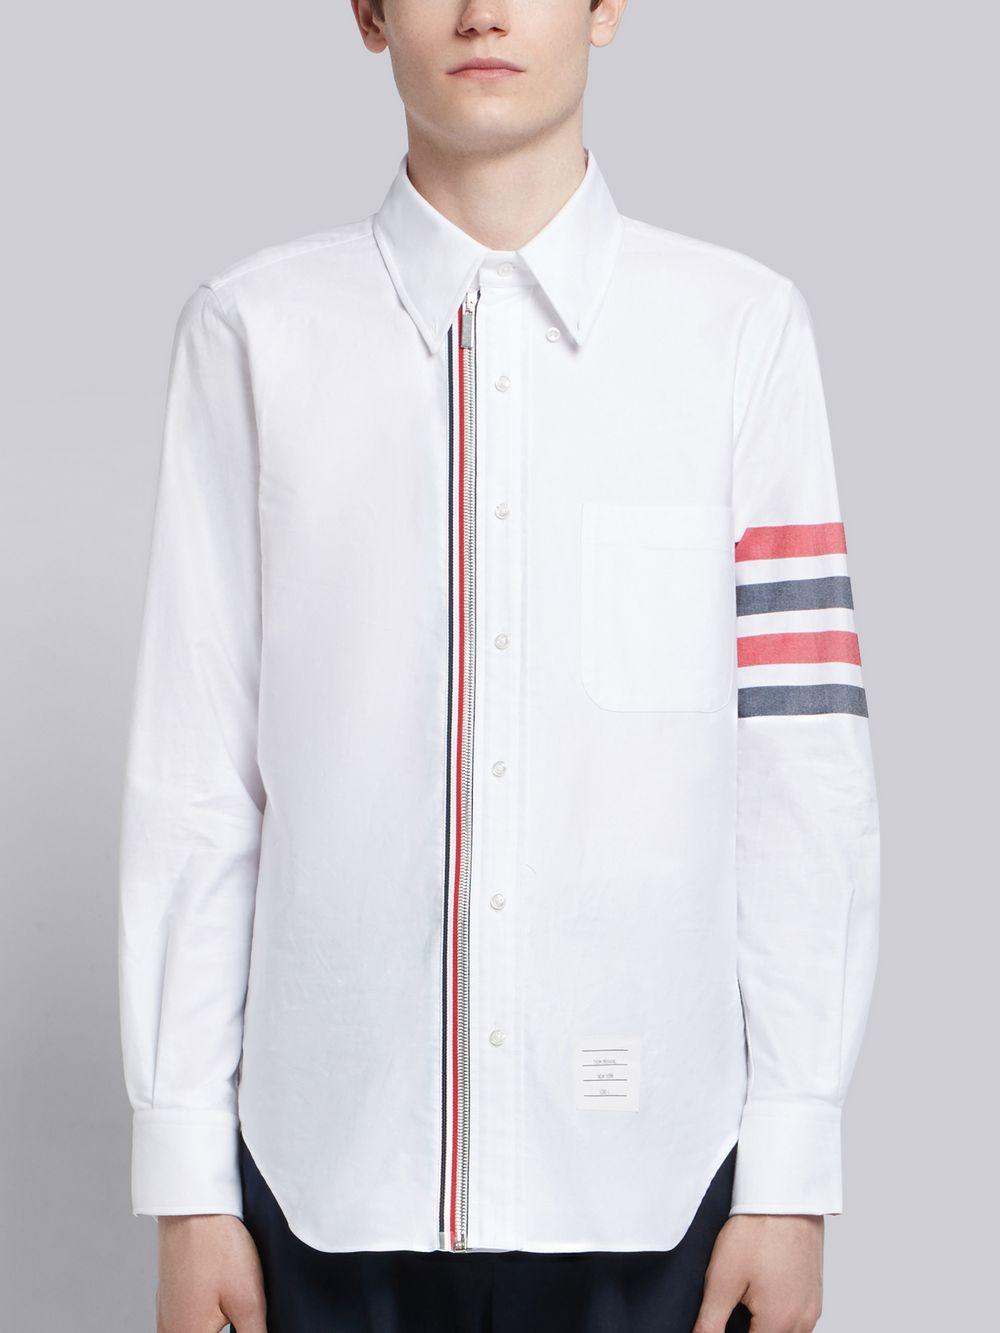 c2fe01e1973 Thom Browne 4-bar Zip-front Oxford Shirt in White for Men - Lyst